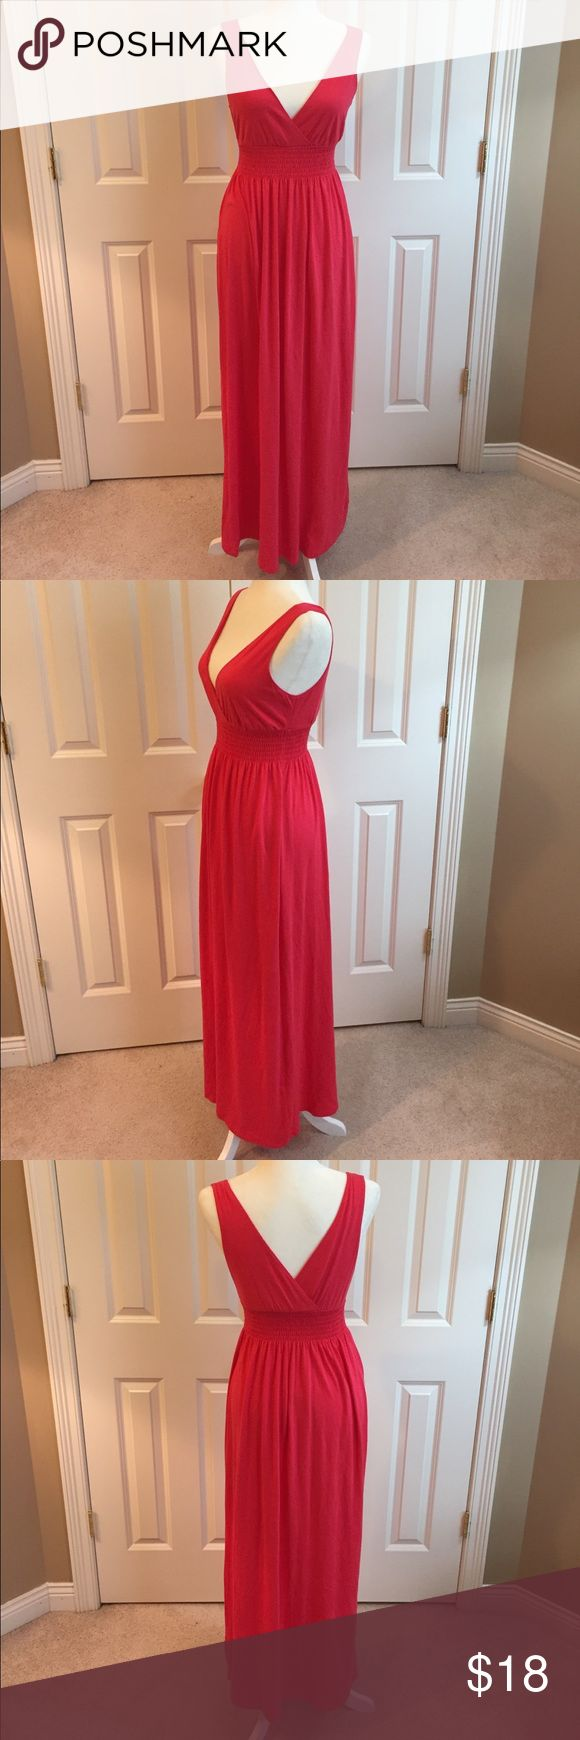 """Old Navy Maxi Dress Gorgeous pink Maxi Dress with a gathered waistline and wrap style bustline. Approximate Flat measurements are armpit to armpit 15"""", waist 12"""" (both have stretch room). Shoulder to hem is 55.5"""". Excellent, like new condition. Happy to answer questions! Old Navy Dresses Maxi"""